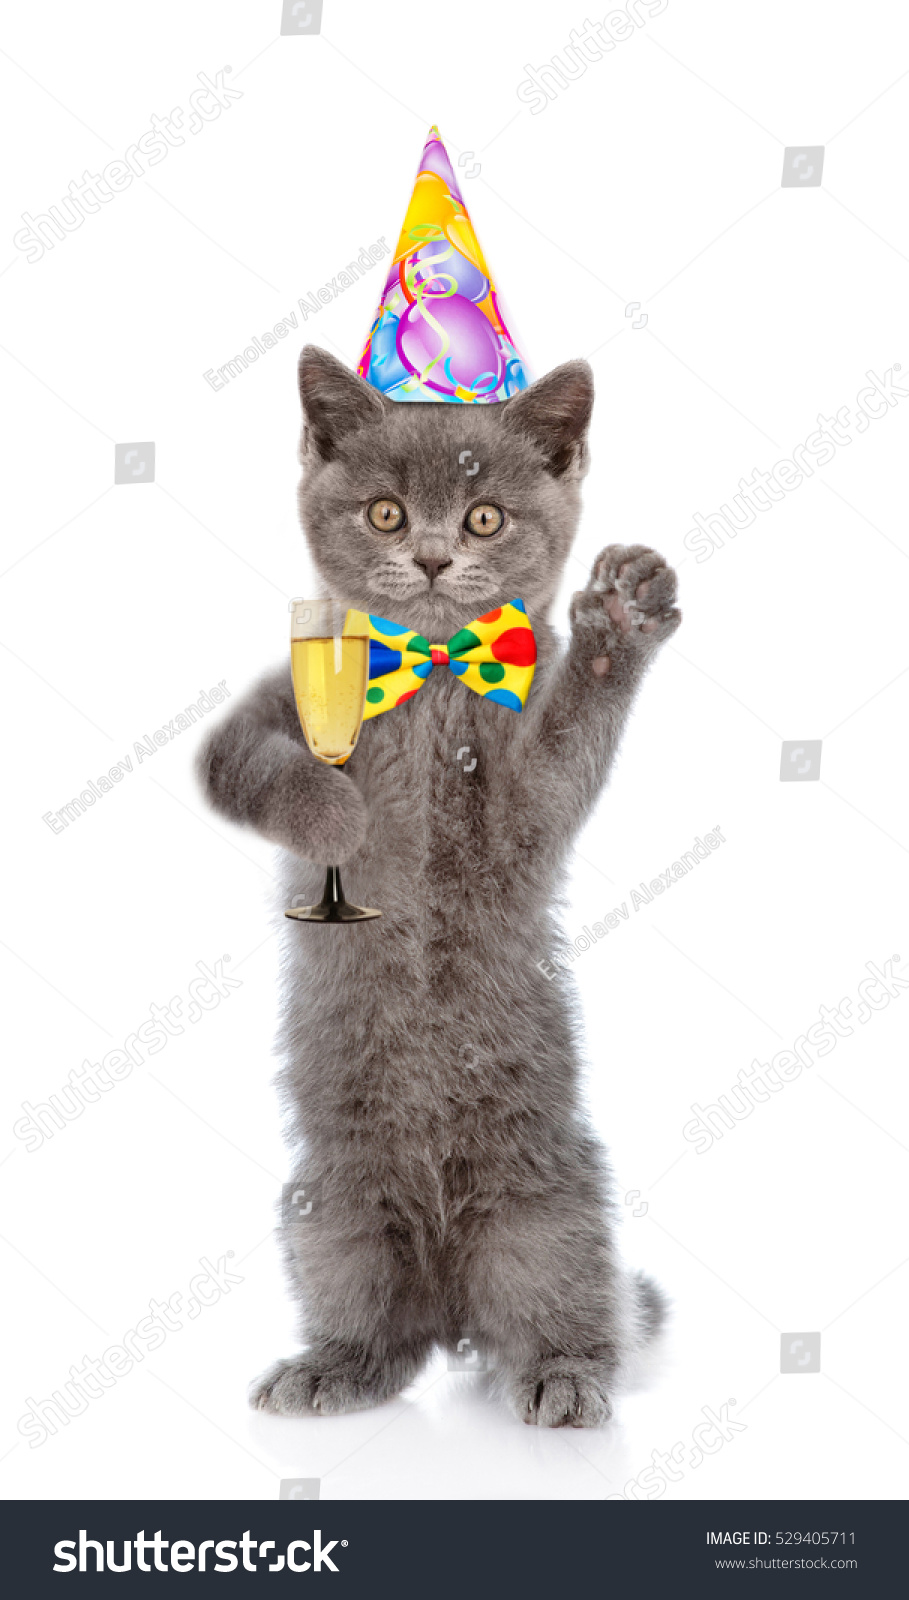 Happy Cat In Birthday Hat Holding Glass Of Champagne Isolated On White Background